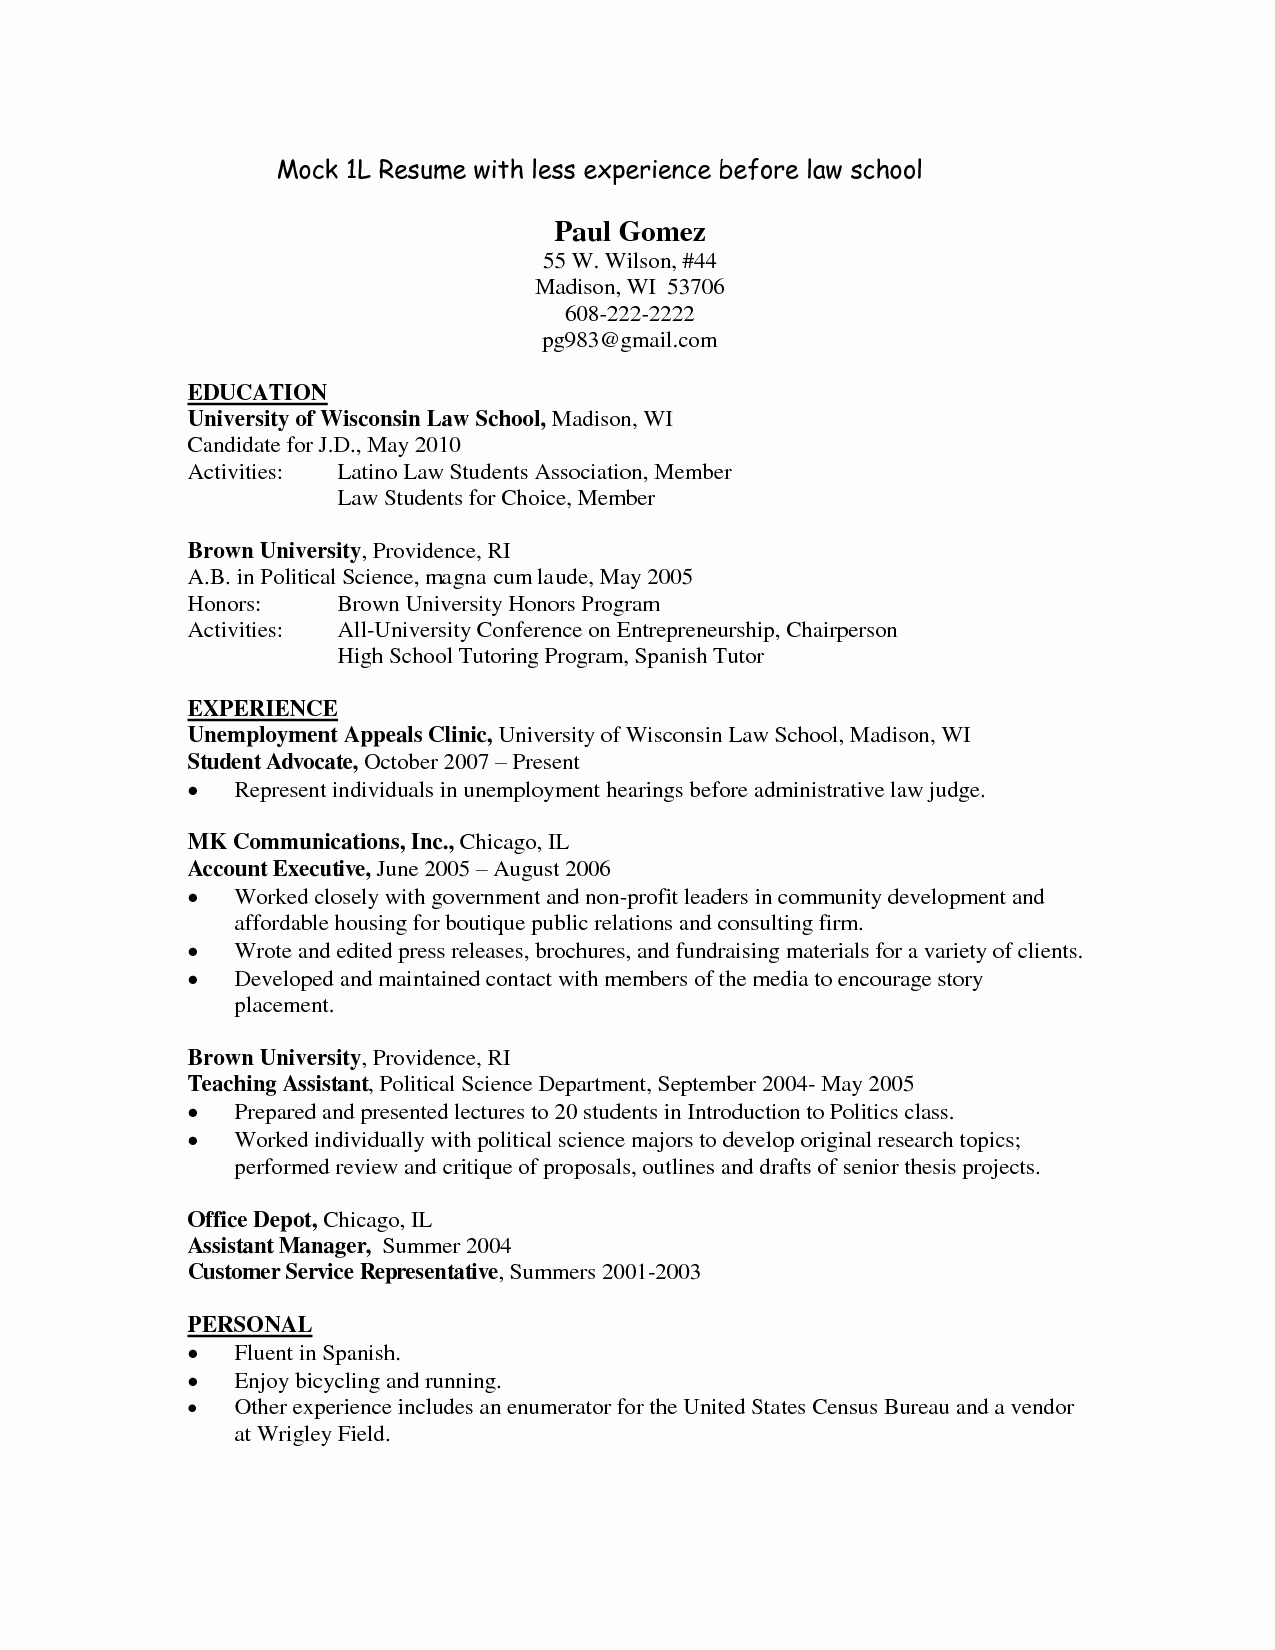 Law School Outline Template Lovely Legal Resume Template Templates and Builder Writing Law